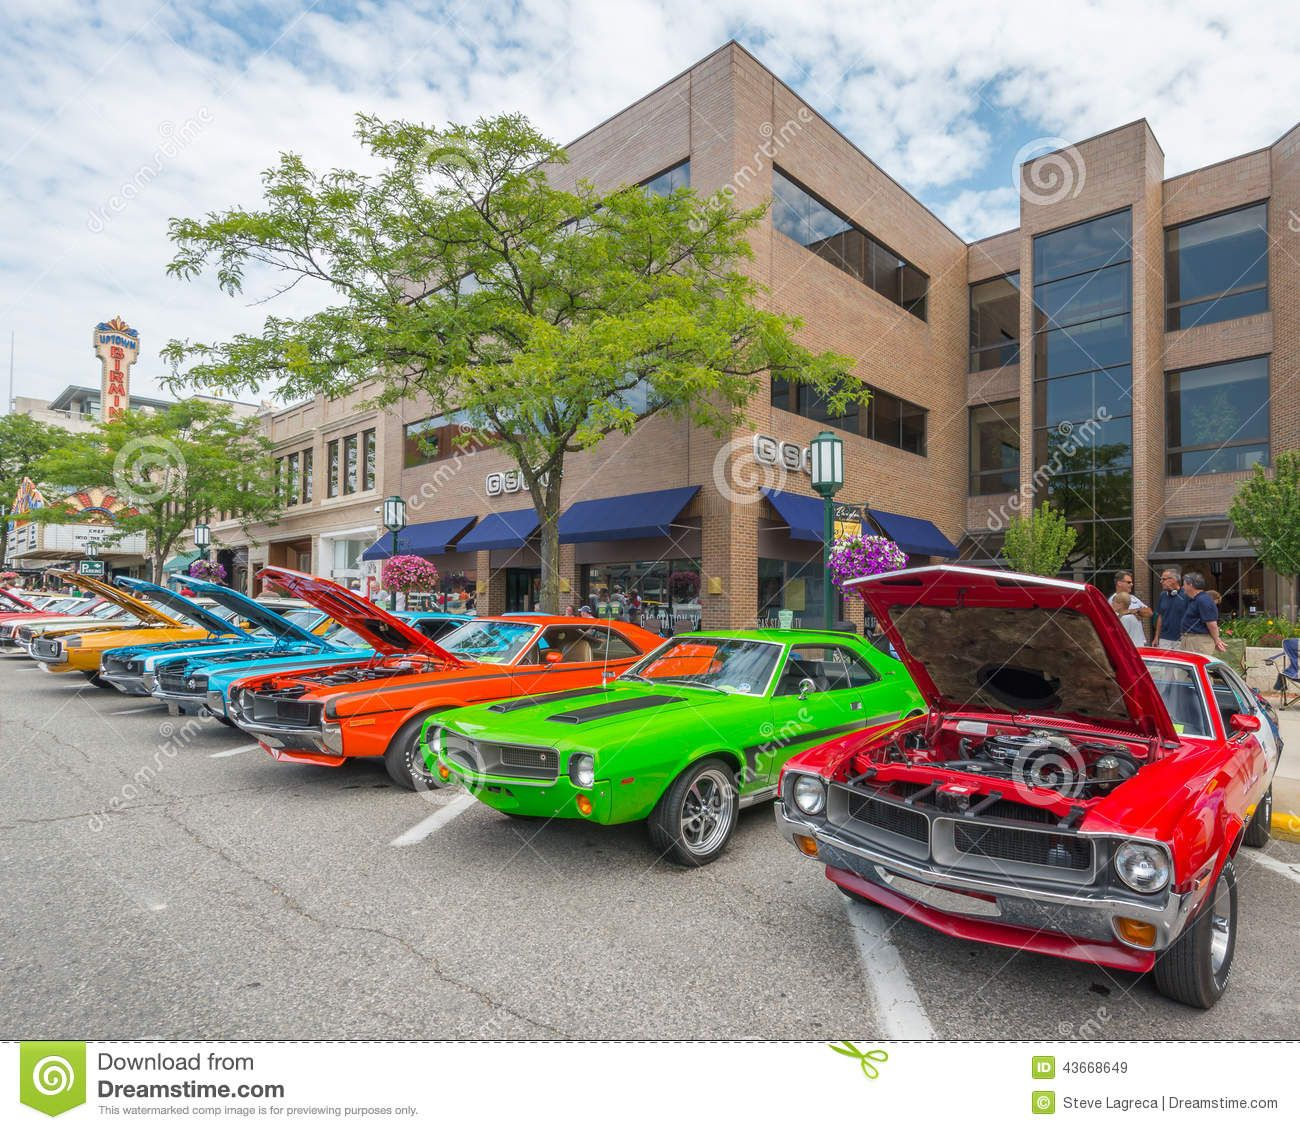 woodward dream cruise michigan   Lucky Autobody is a full service ...